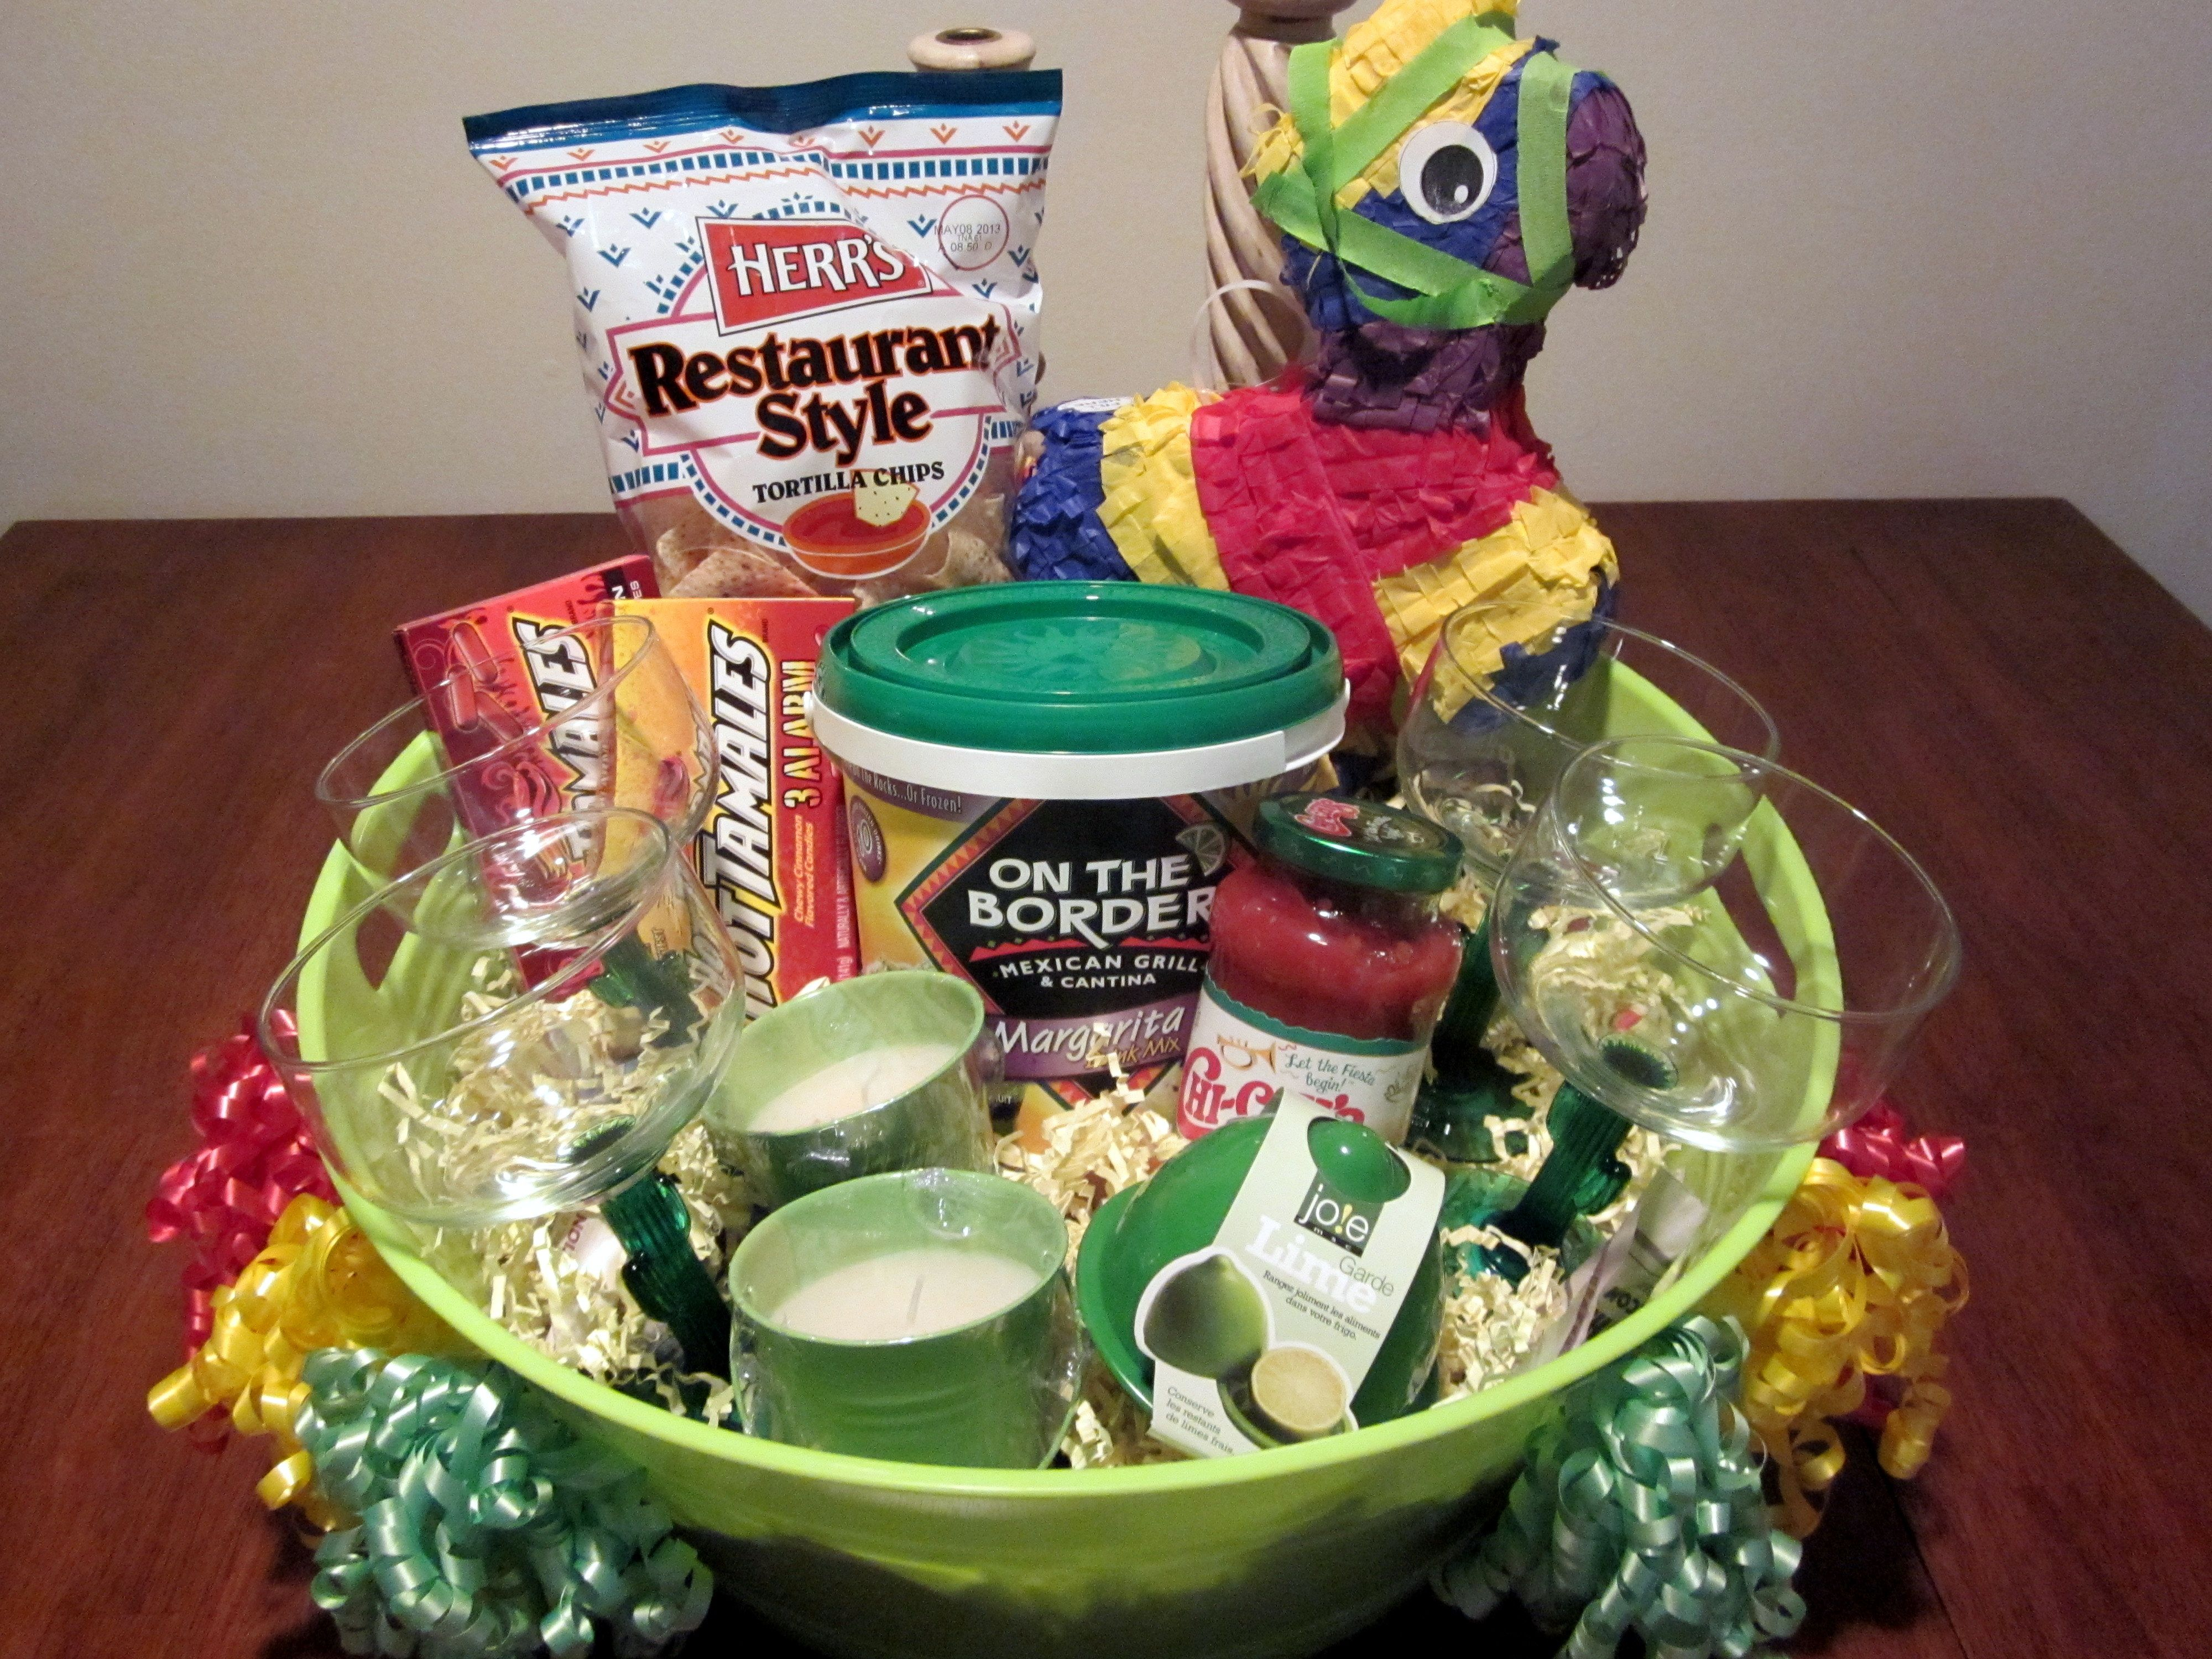 Gift Basket - Chips u0026 Salsa Hot Tamales Candies Corona Salt and Pepper Shakers Citronella Candles and a real Pinata! & Gift Basket - Chips u0026 Salsa Hot Tamales Candies Corona Salt and ...